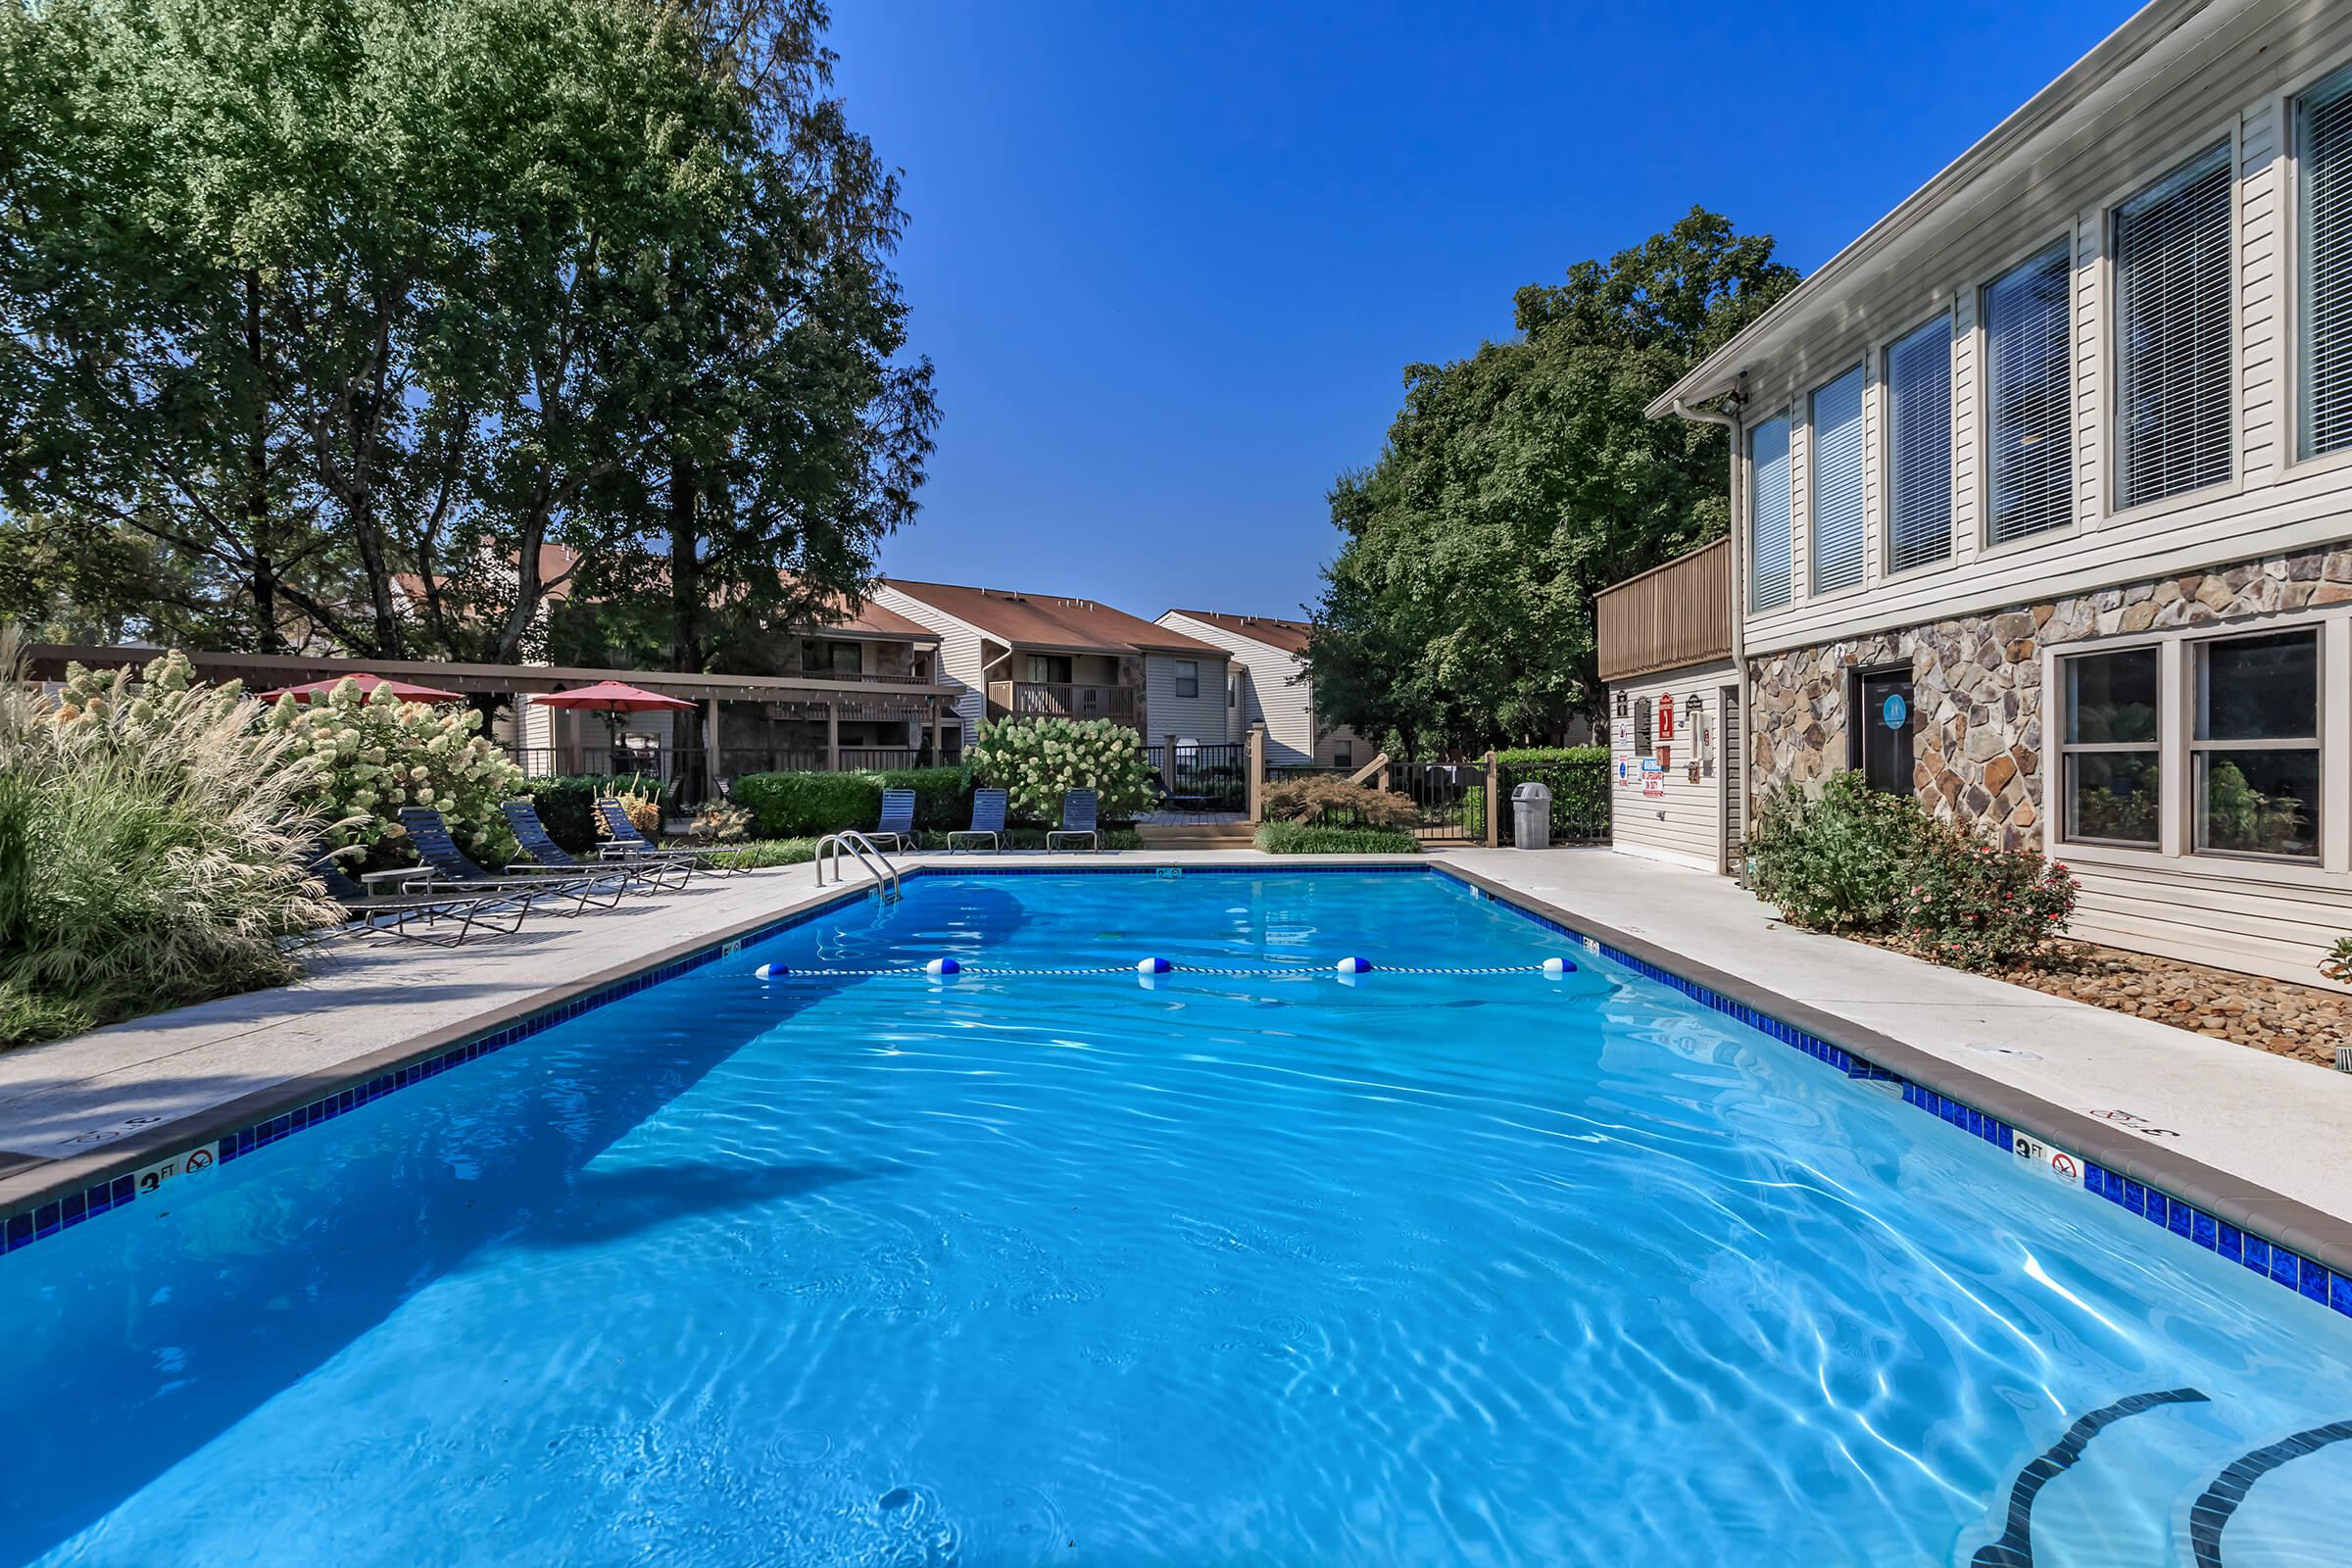 Swim Some Laps Here at Laurel Ridge Apartments in Chattanooga, Tennessee